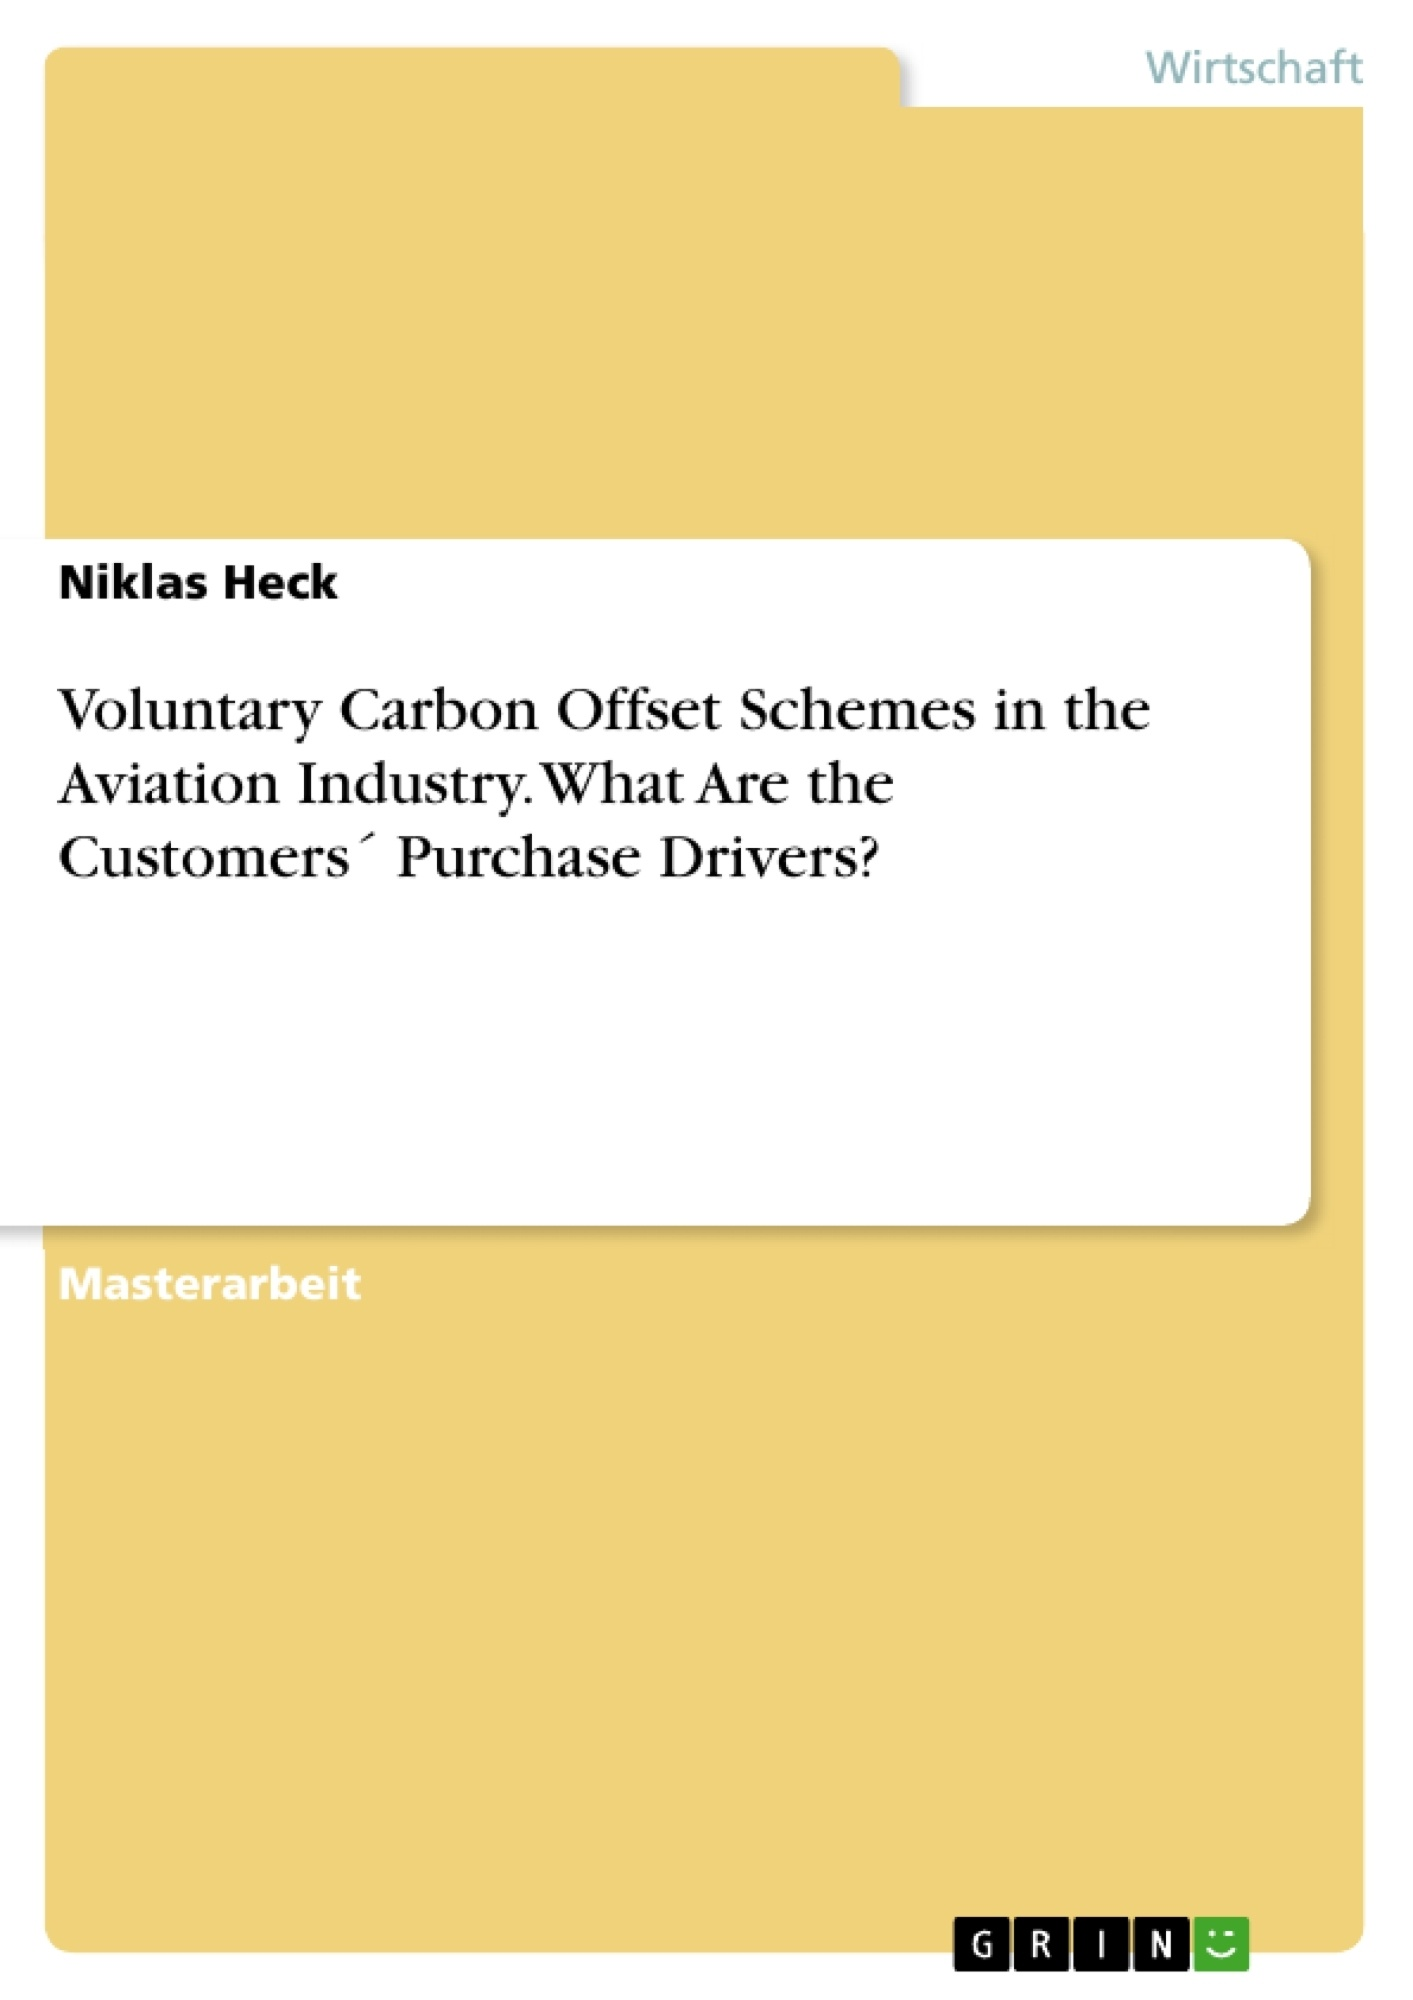 Titel: Voluntary Carbon Offset Schemes in the Aviation Industry. What Are the Customers´ Purchase Drivers?